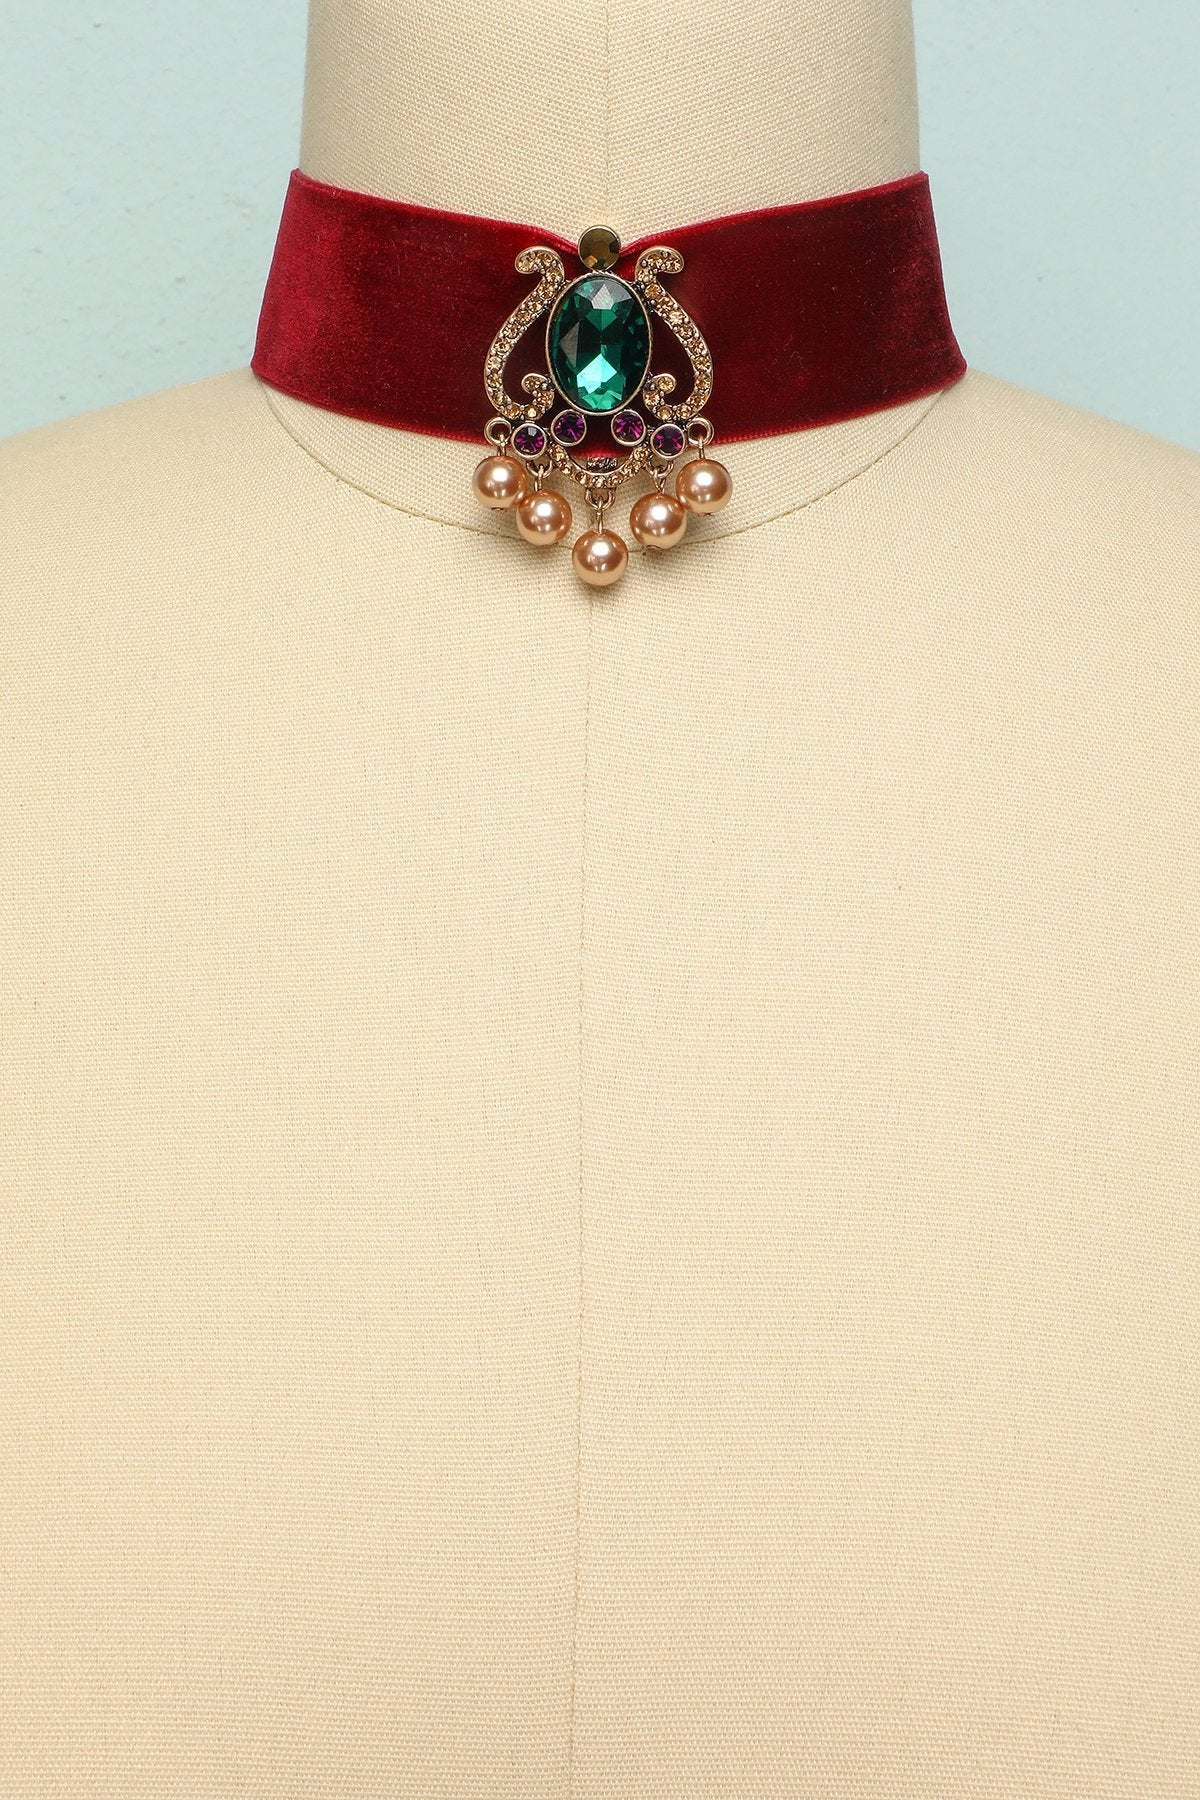 Red Velvet Necklace - ZAPAKA